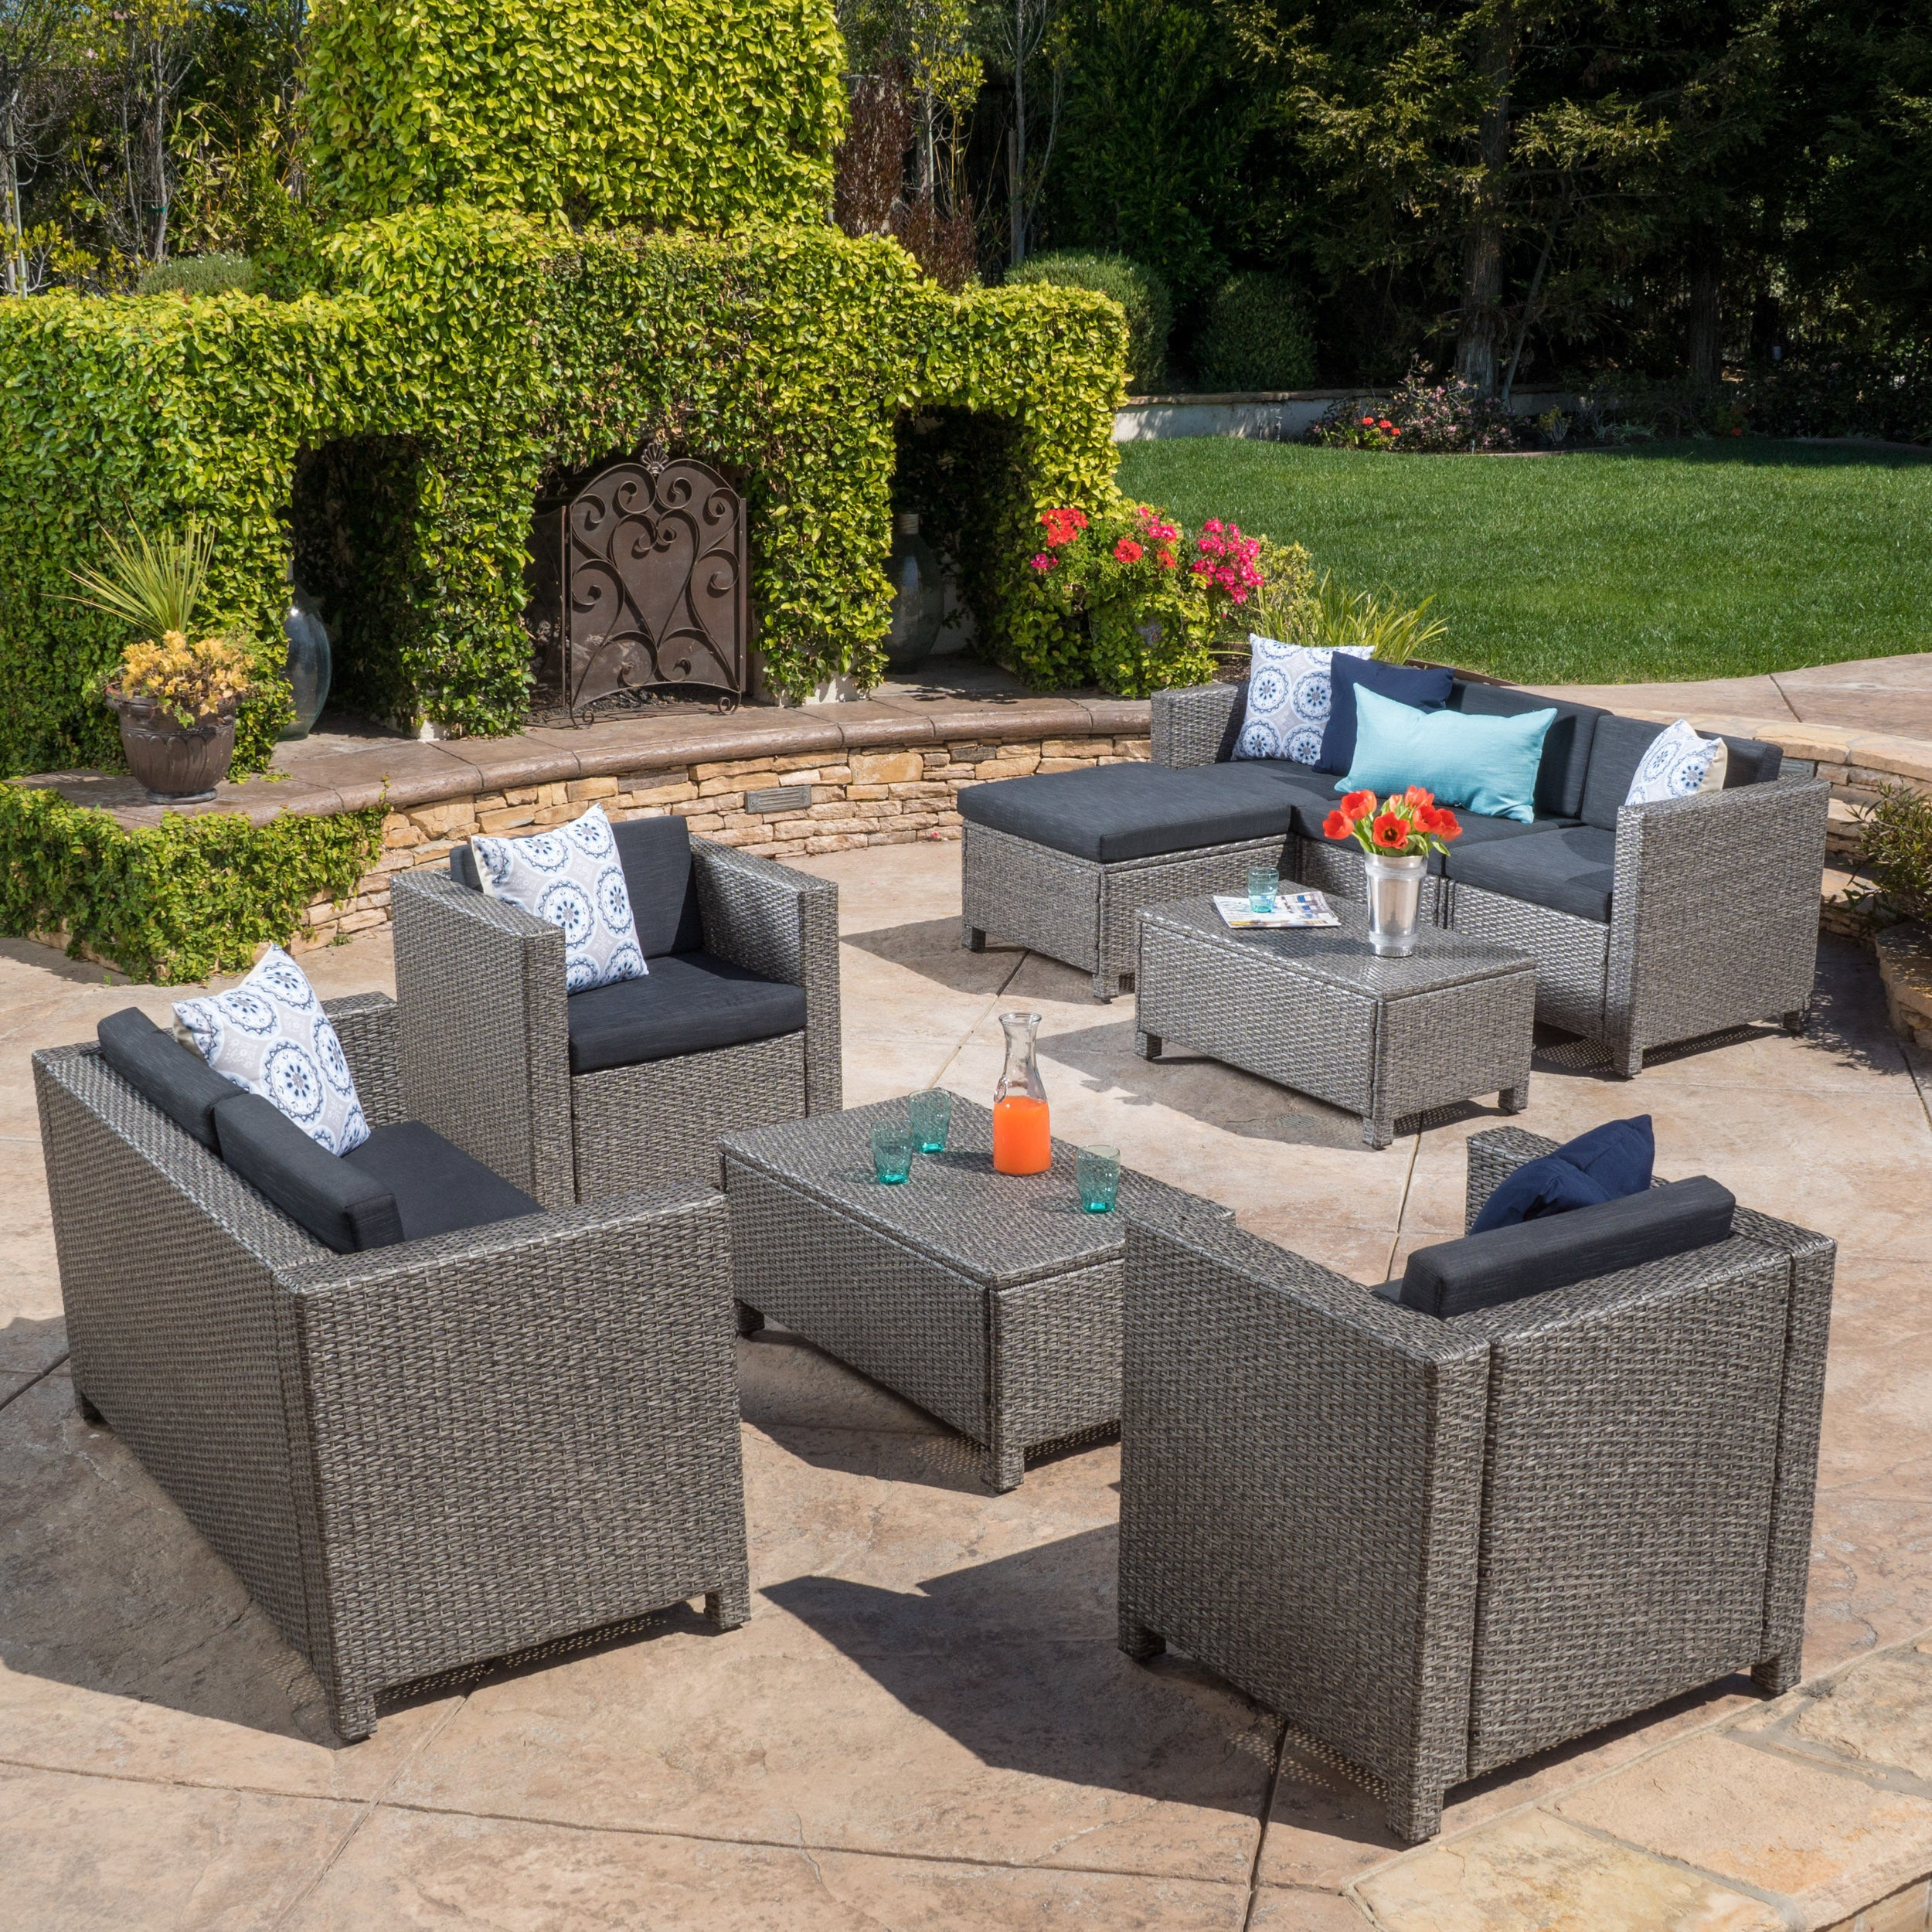 Details About Puerta Outdoor 9 Piece Wicker Sectional Sofa Set With